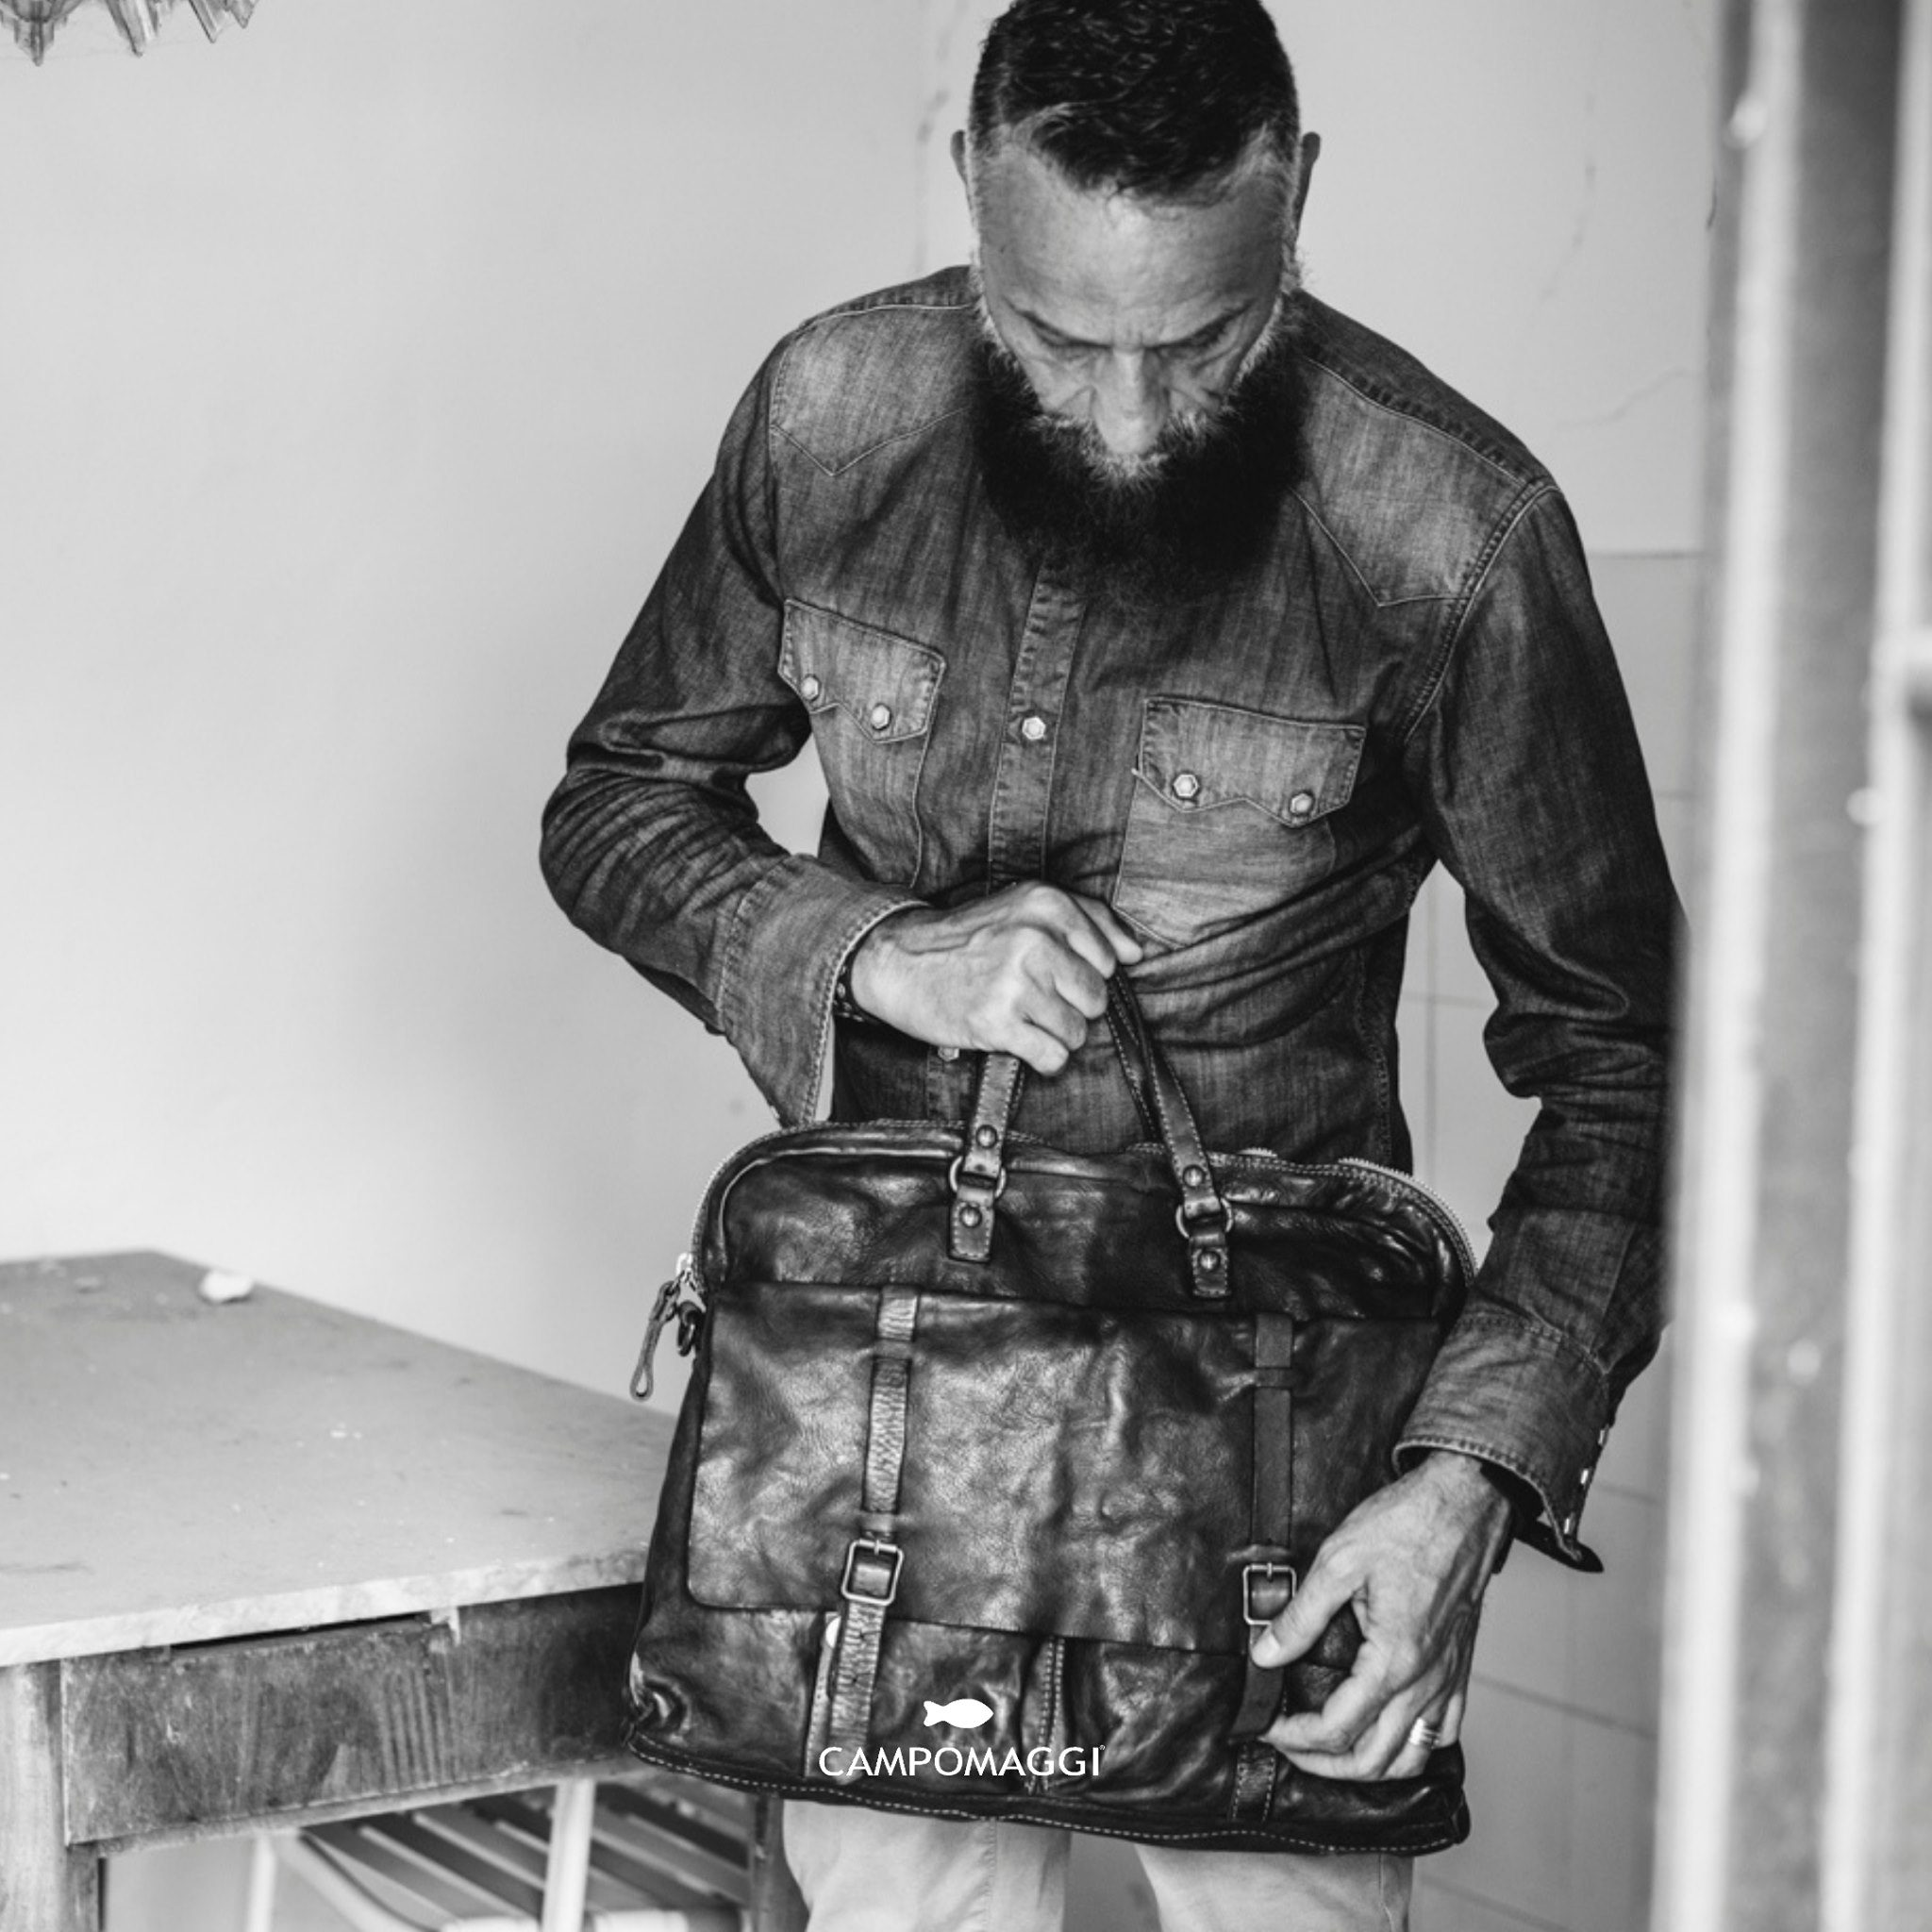 Campomaggi Leather Bags Made in Italy